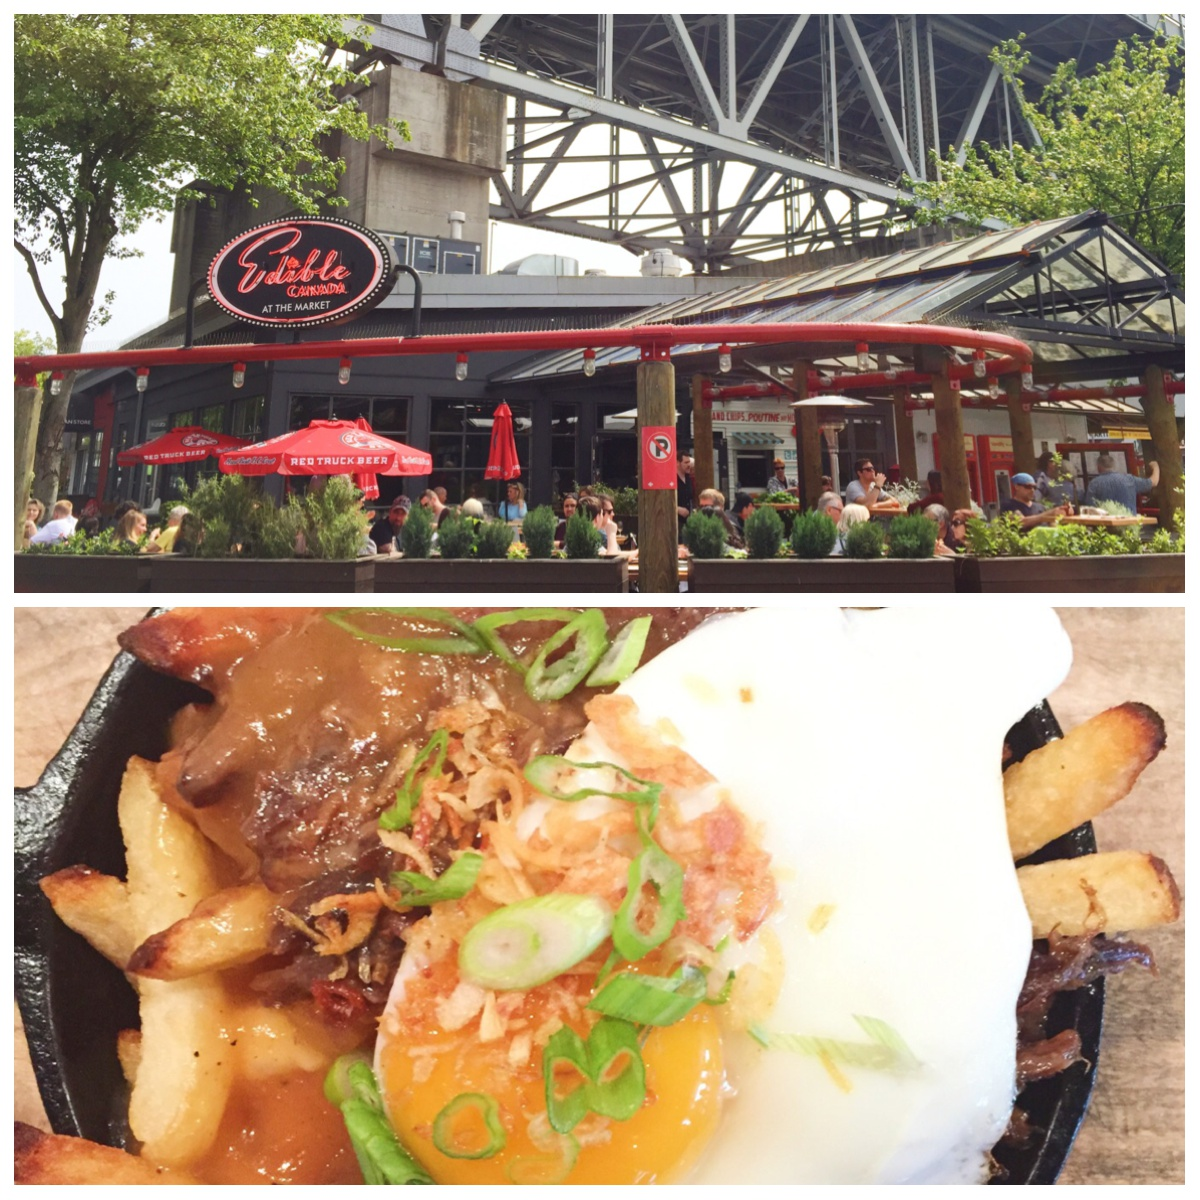 Best place for lunch in vancouver: Edible Canada